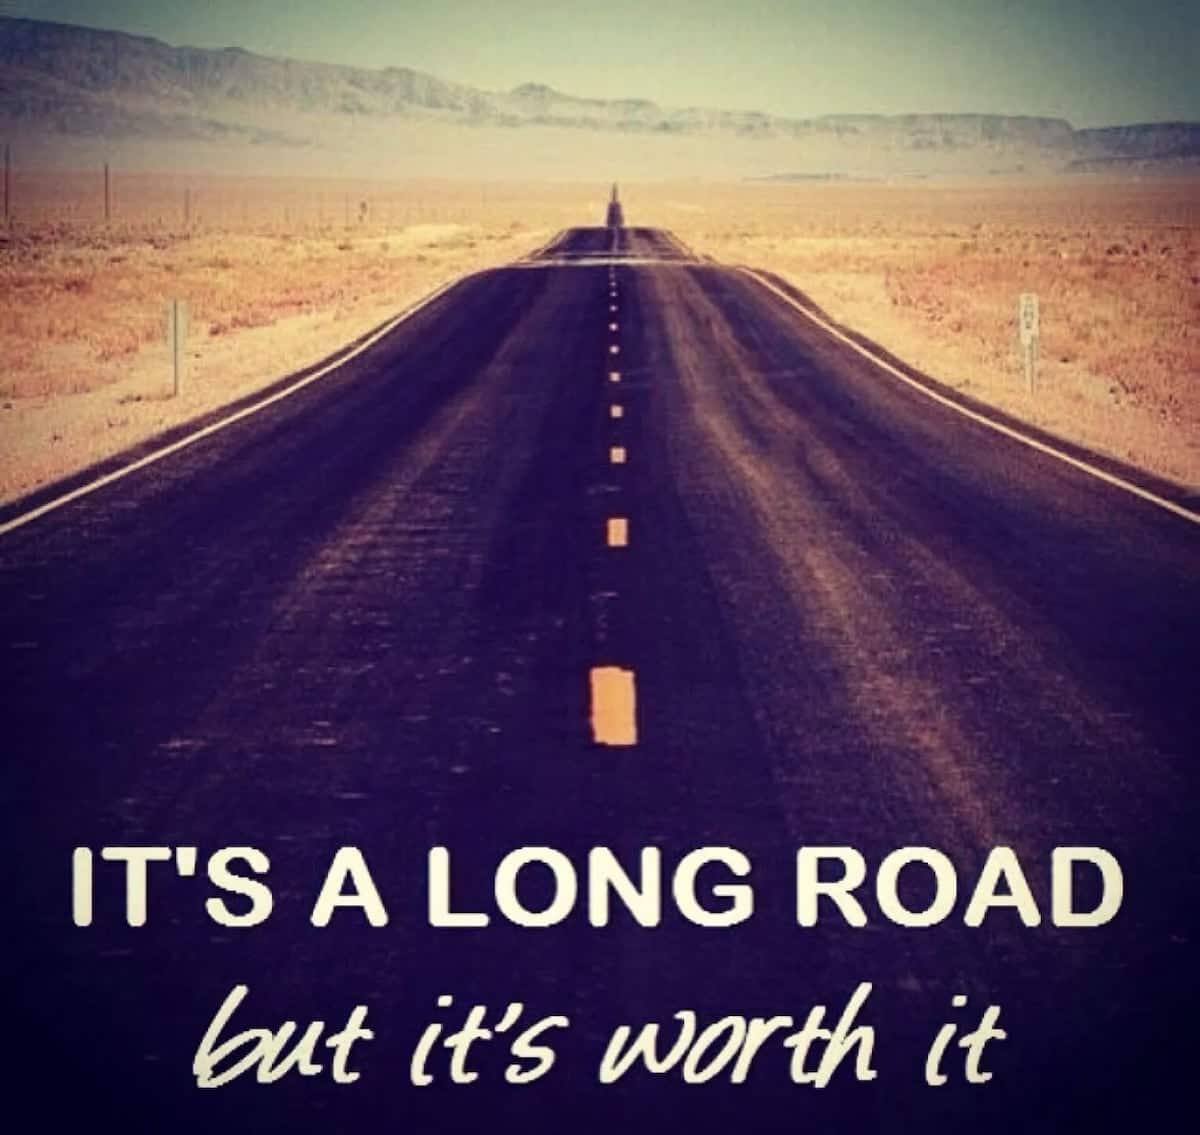 safe travels message drive safely quotes long journey quotes